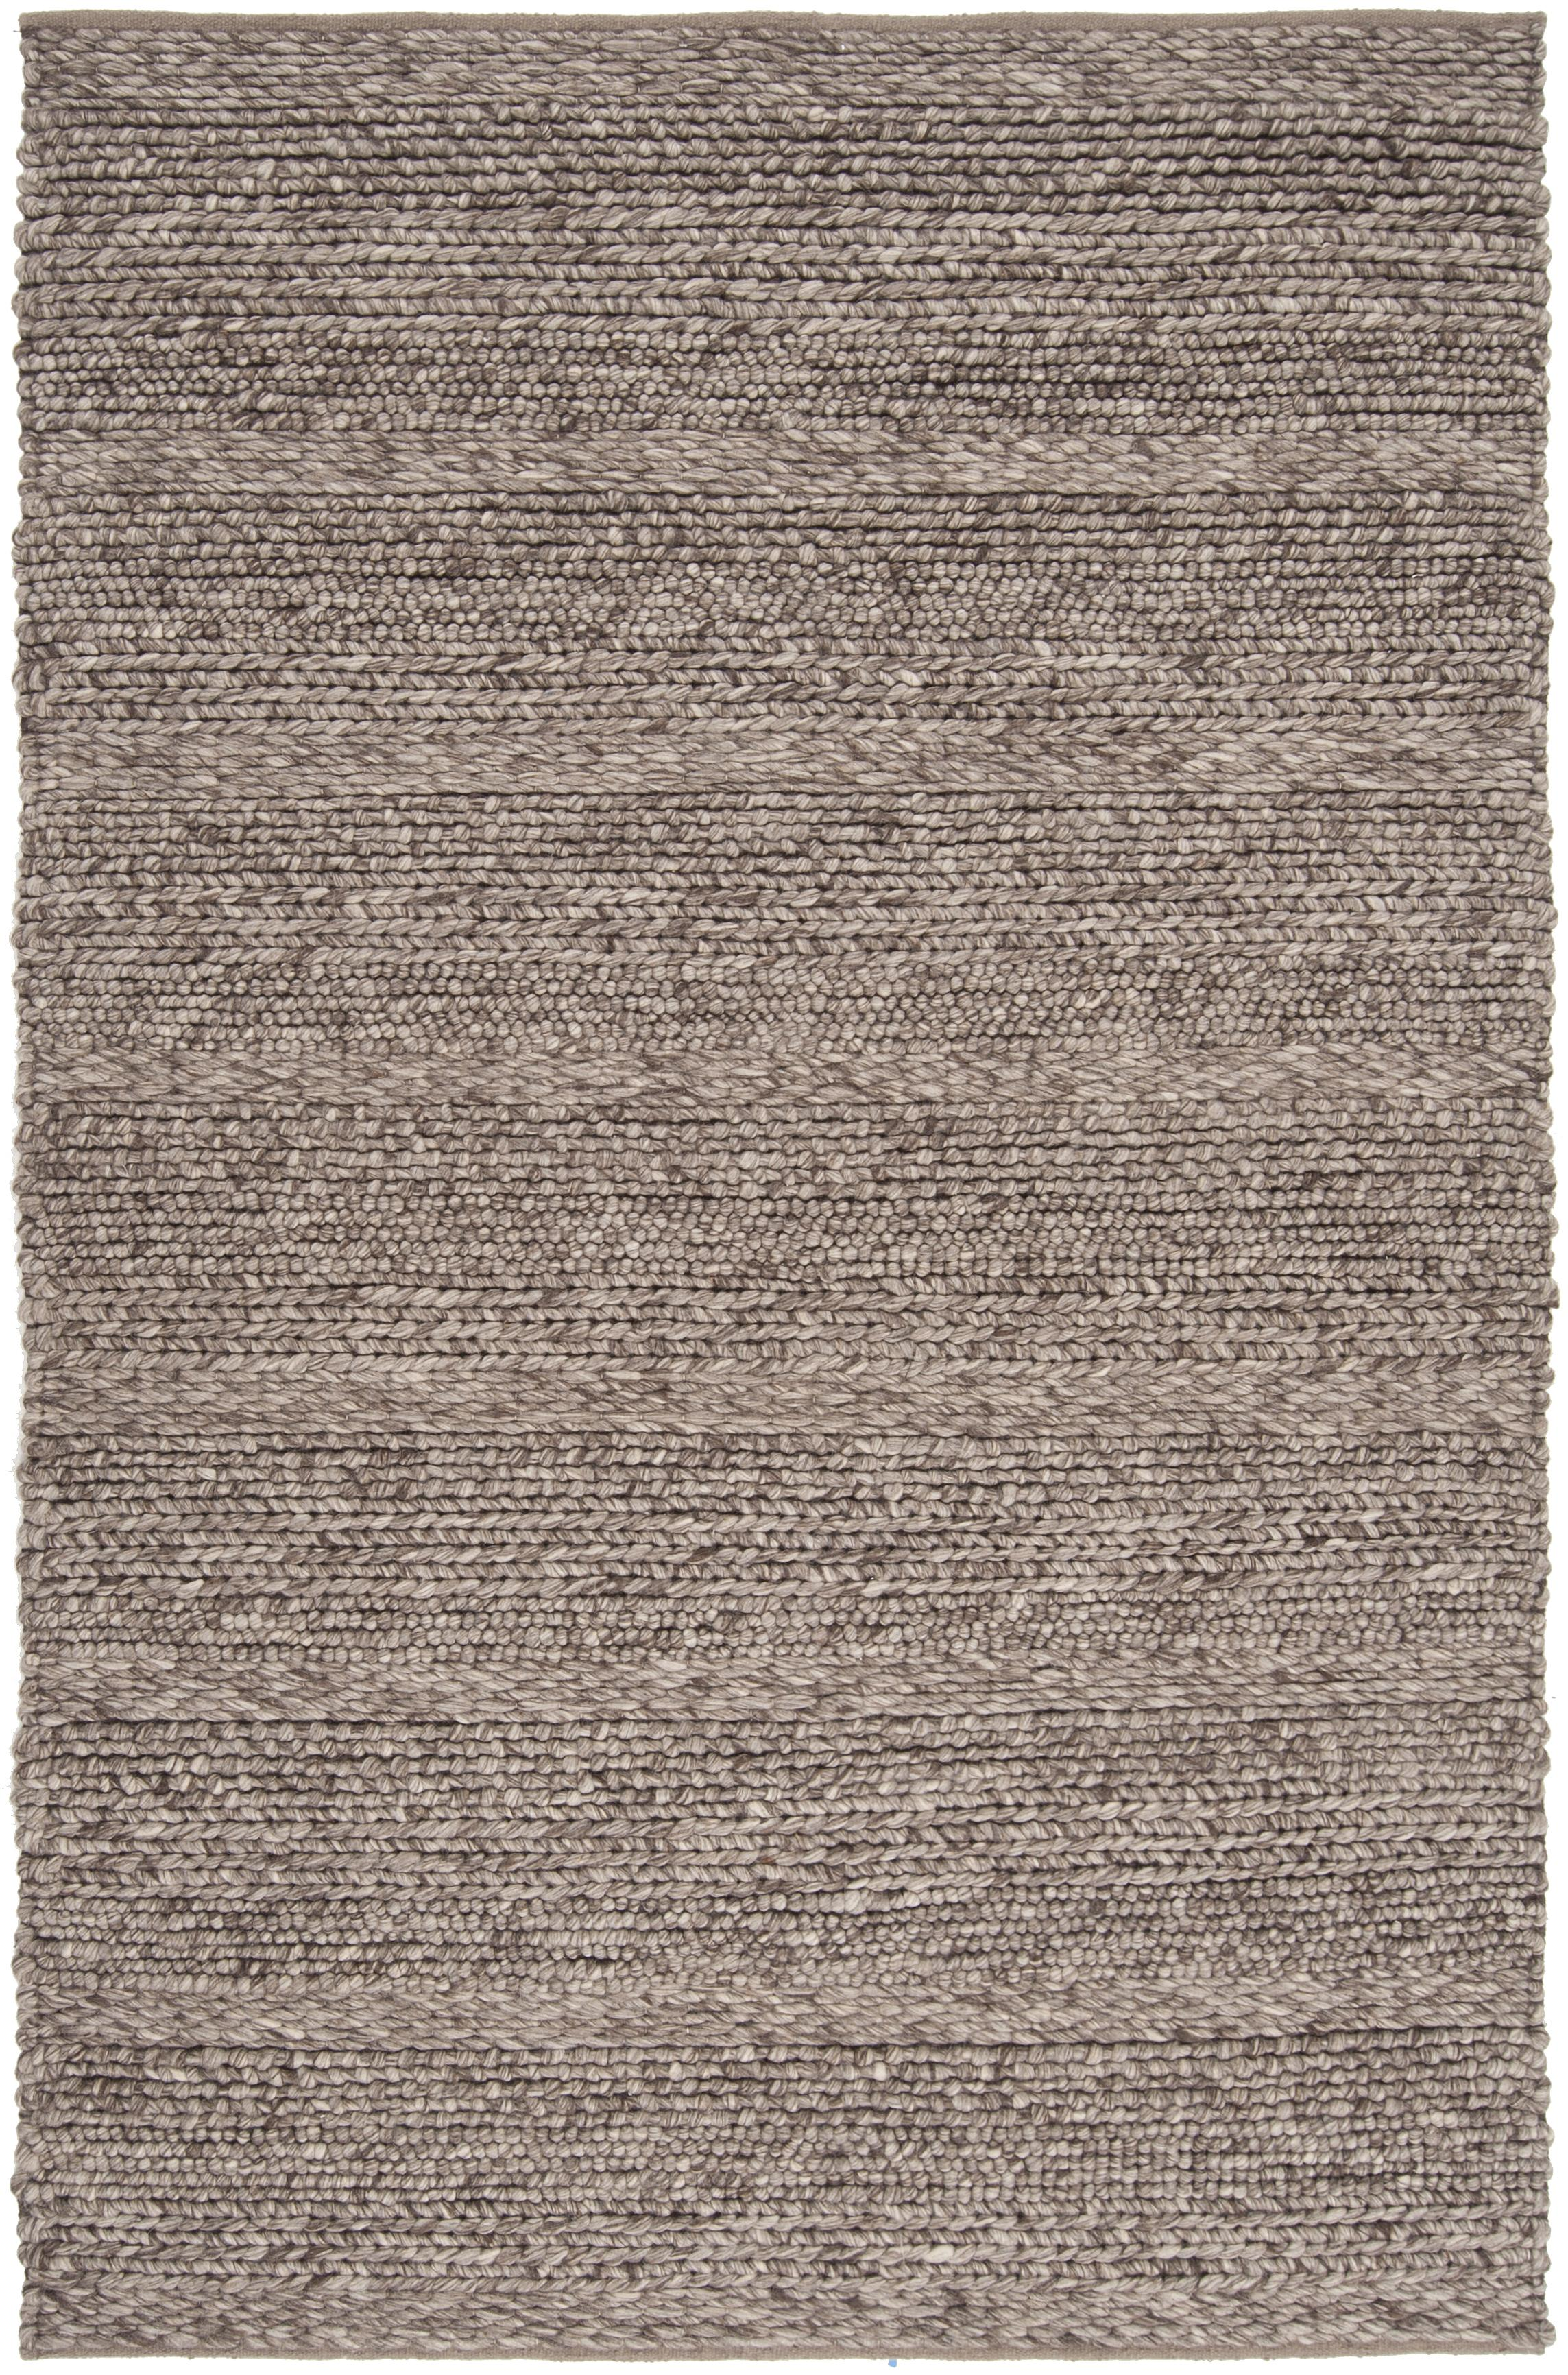 Tahoe 9' x 13' by Ruby-Gordon Accents at Ruby Gordon Home